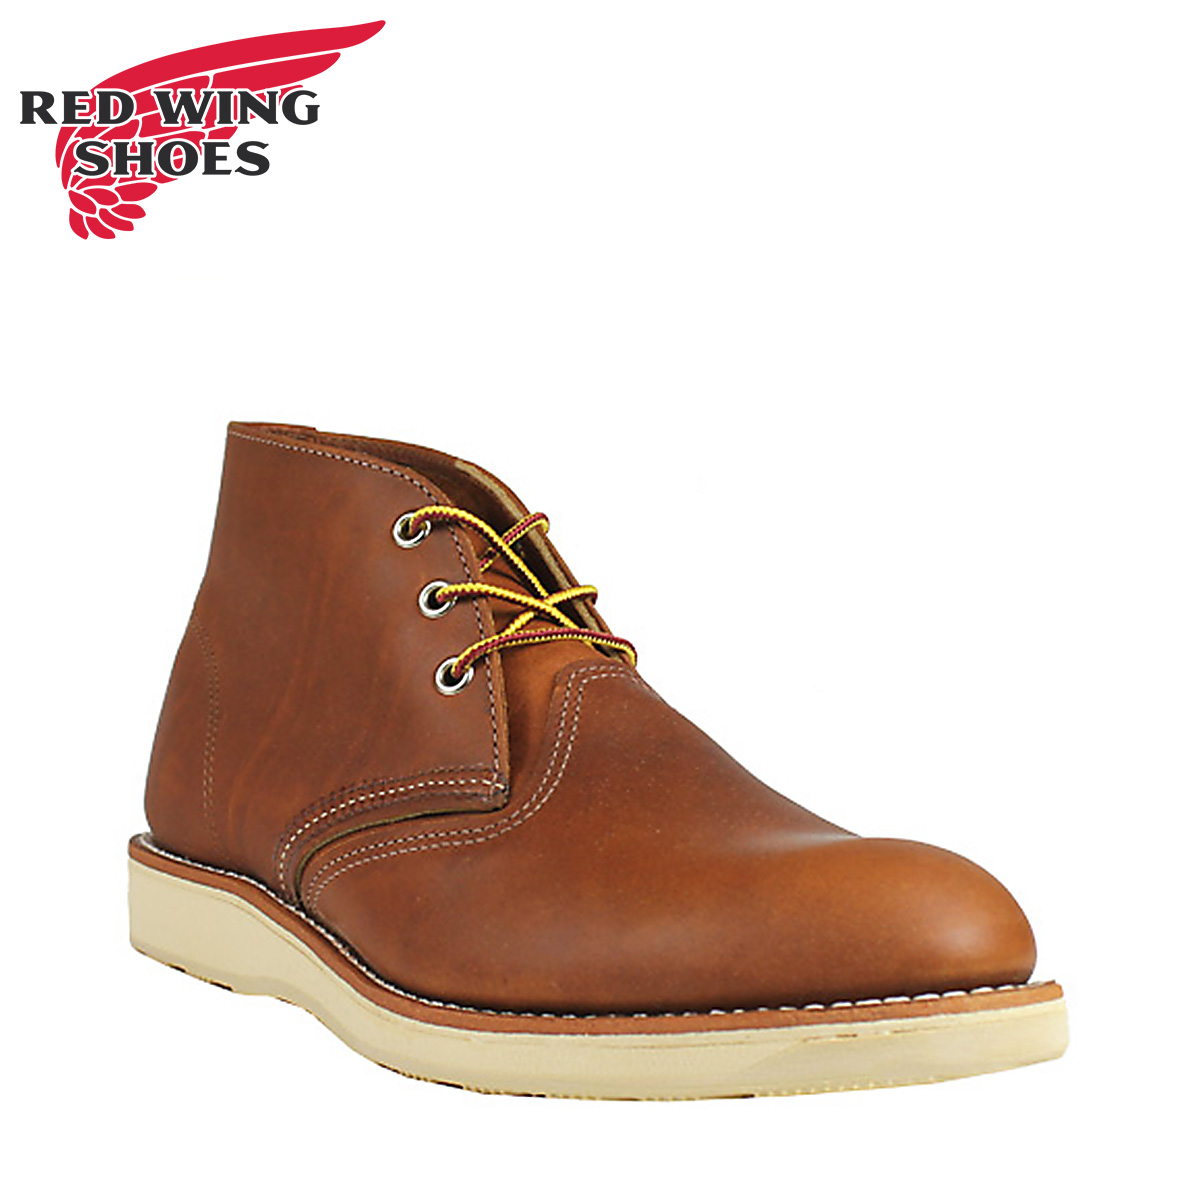 b168adf0158 RED WING Red Wing chukka boots CLASSIC CHUKKA classic chukka D wise 3140  Red Wing work boots men